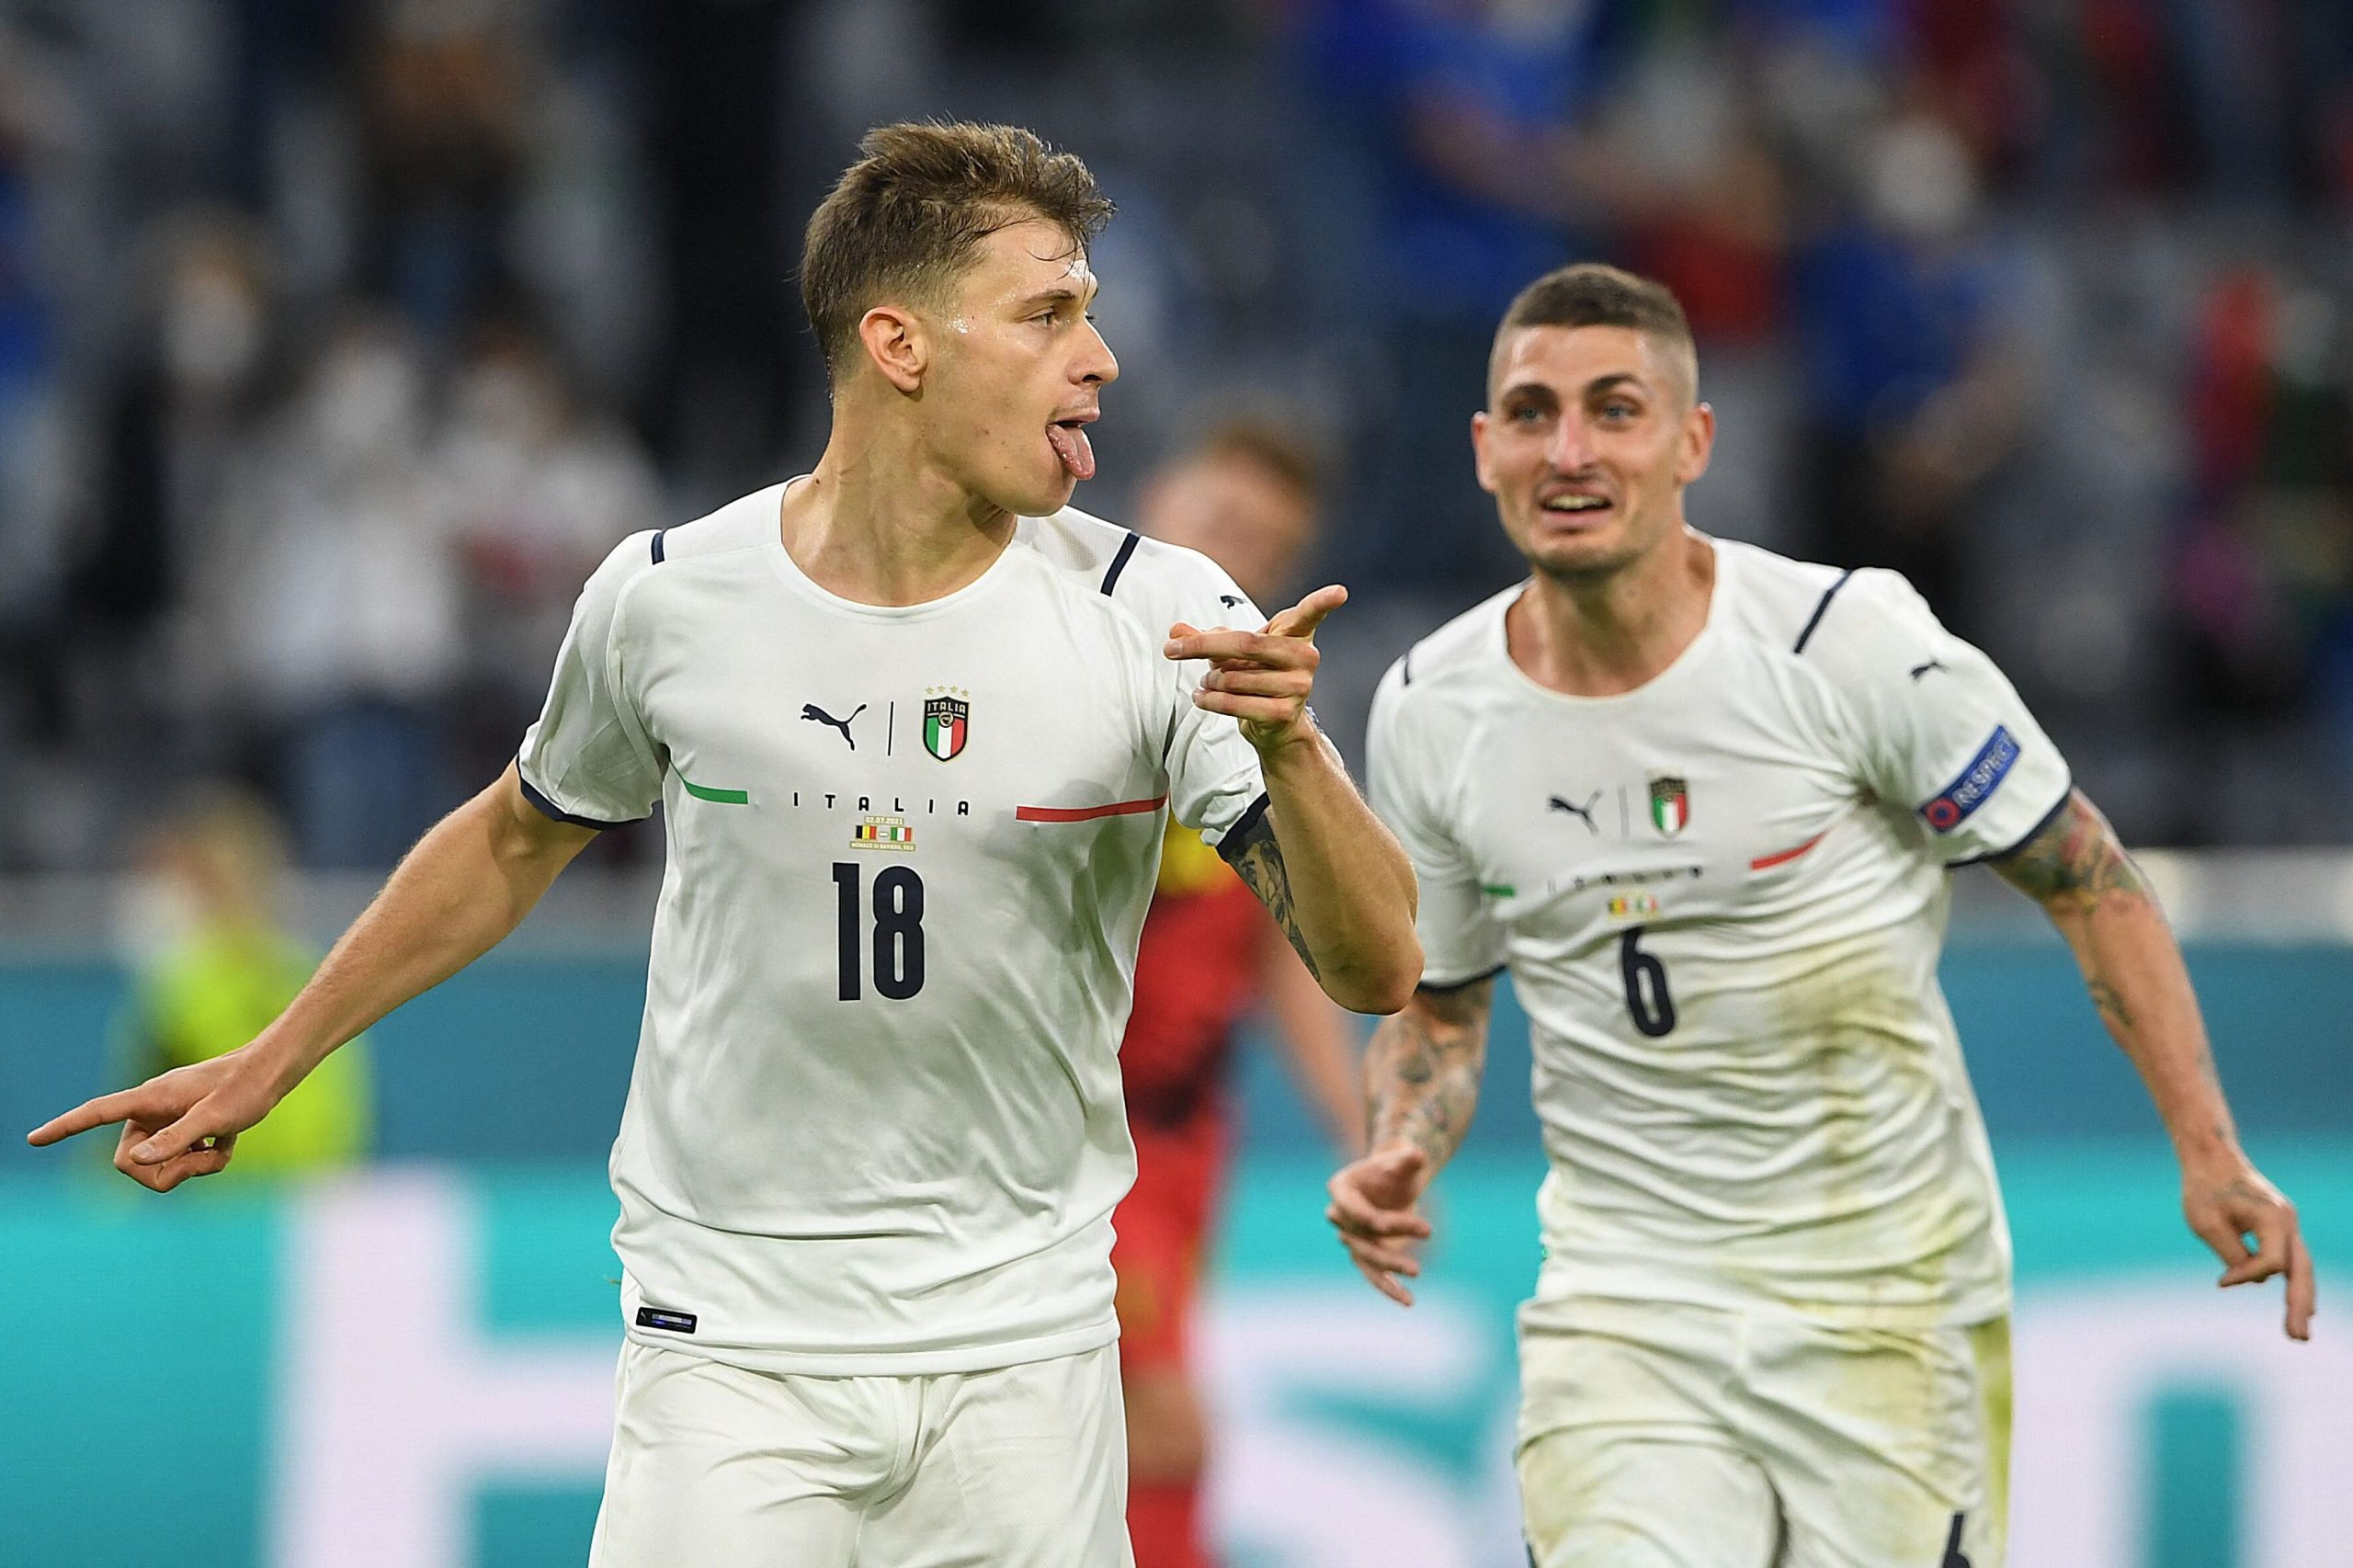 <i>CHRISTOF STACHE/AFP/POOL/AFP via Getty Images</i><br/>Italy thrilled once again to knock out Belgium and advance to the semifinals.